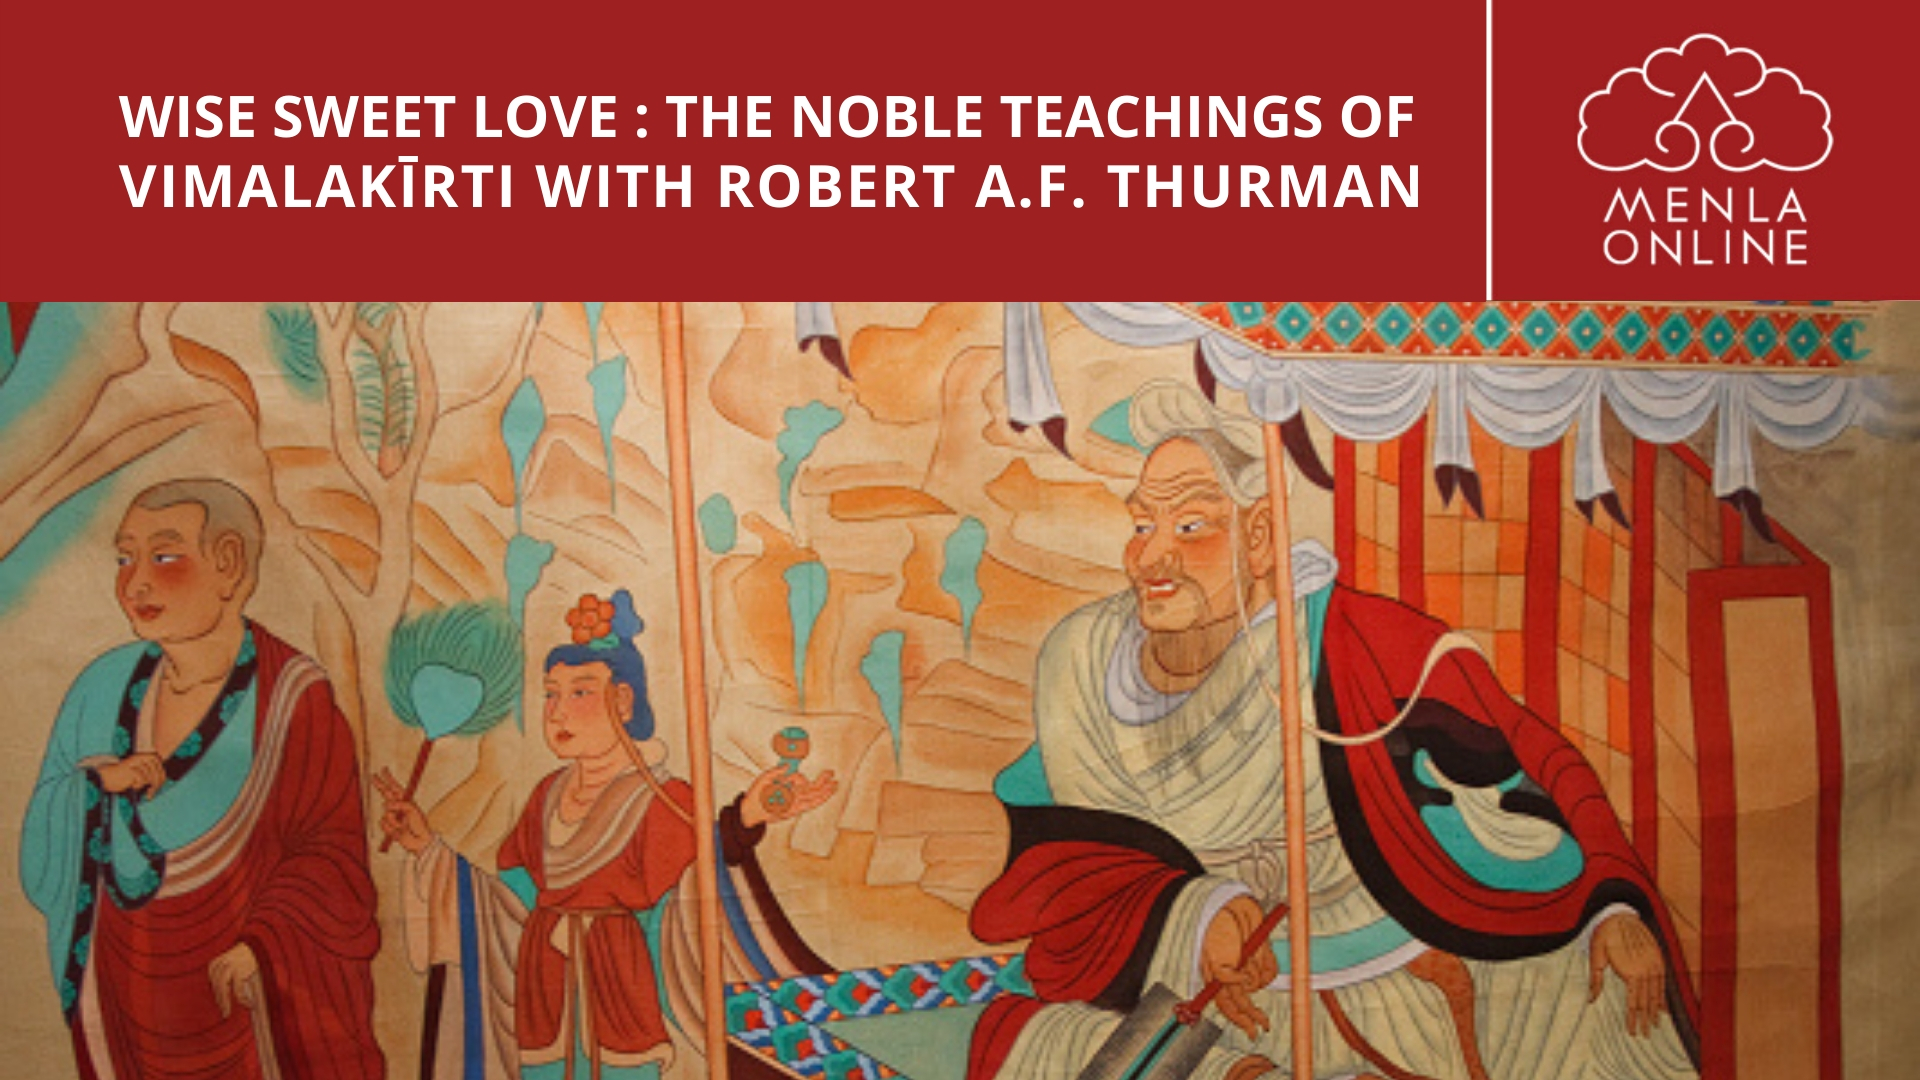 Wise Sweet Love : The Noble Teachings of Vimalakīrti @ Menla Retreat and Dewa Spa